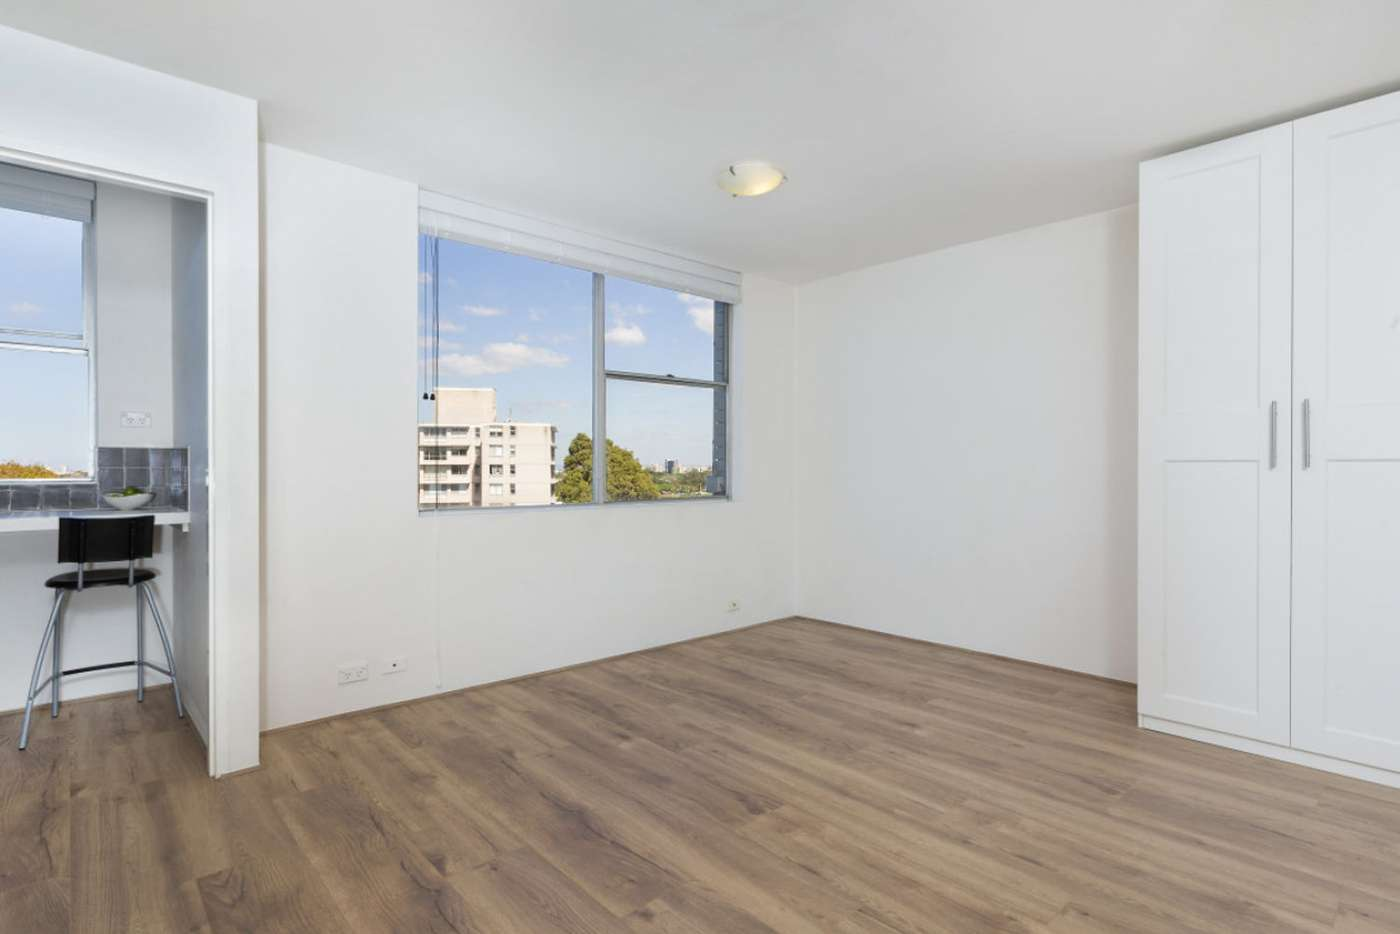 Main view of Homely studio listing, 7e/105 Cook Road, Centennial Park NSW 2021